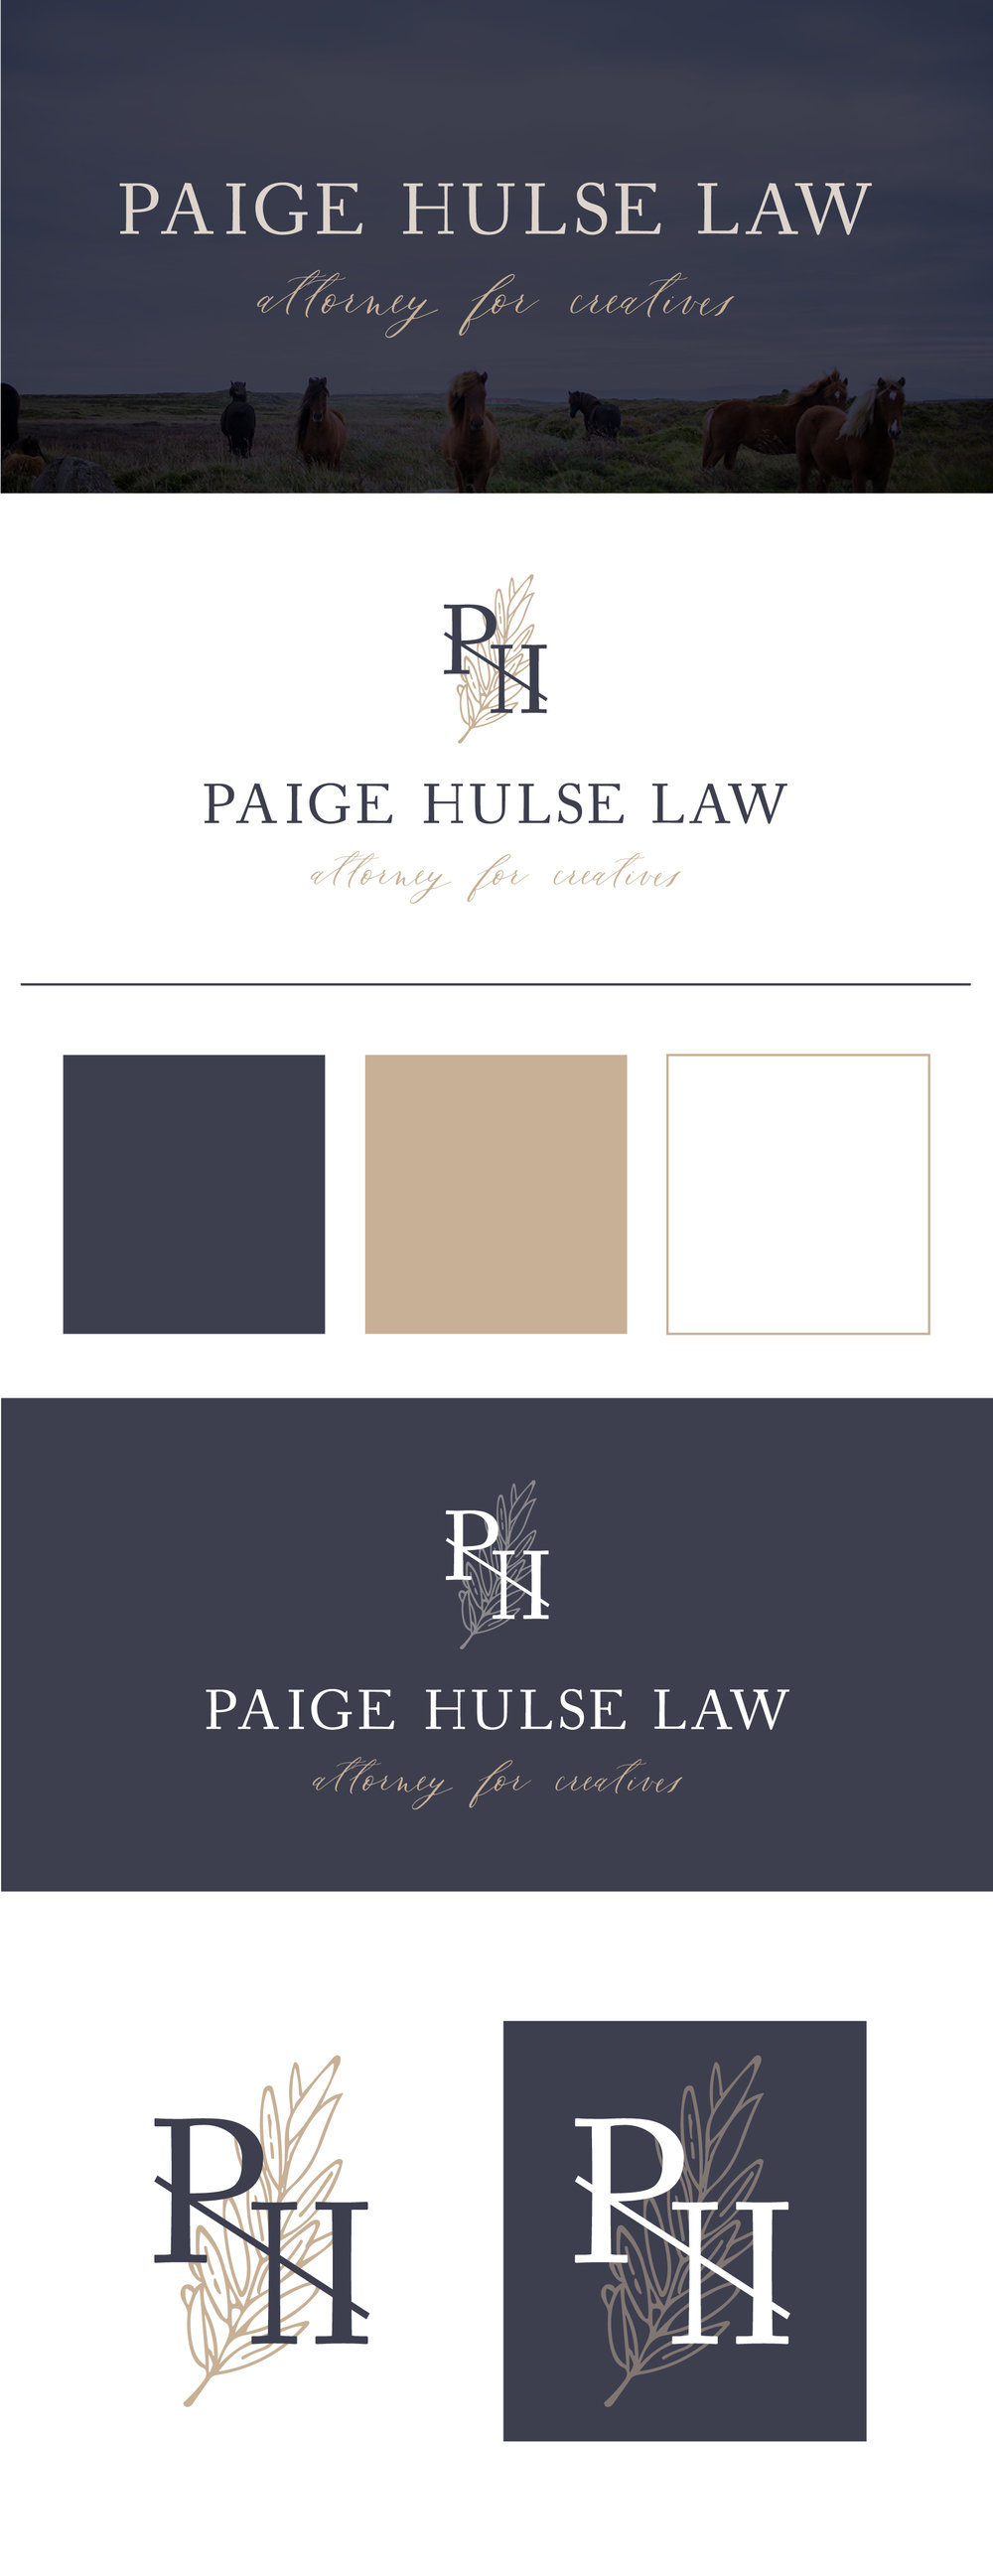 Hayley bigham designs paige hulse law logo design stationary paige also needed business cards to be able to market herself in person and bring the brand full circle we created a two toned card on the thickest cotton magicingreecefo Image collections